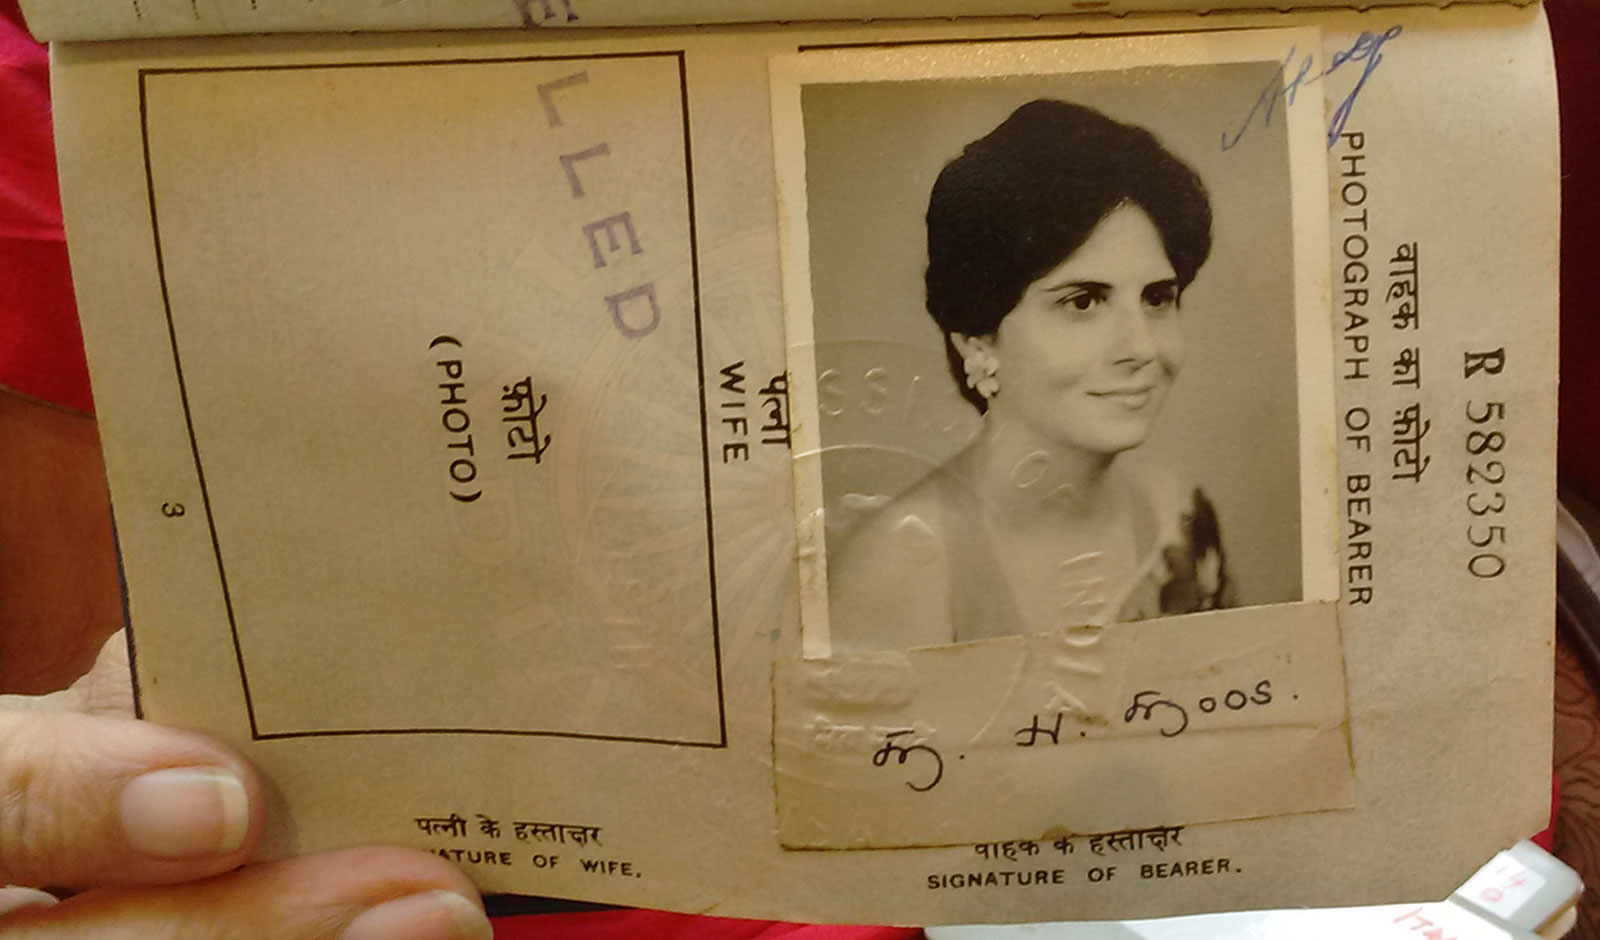 an early passport